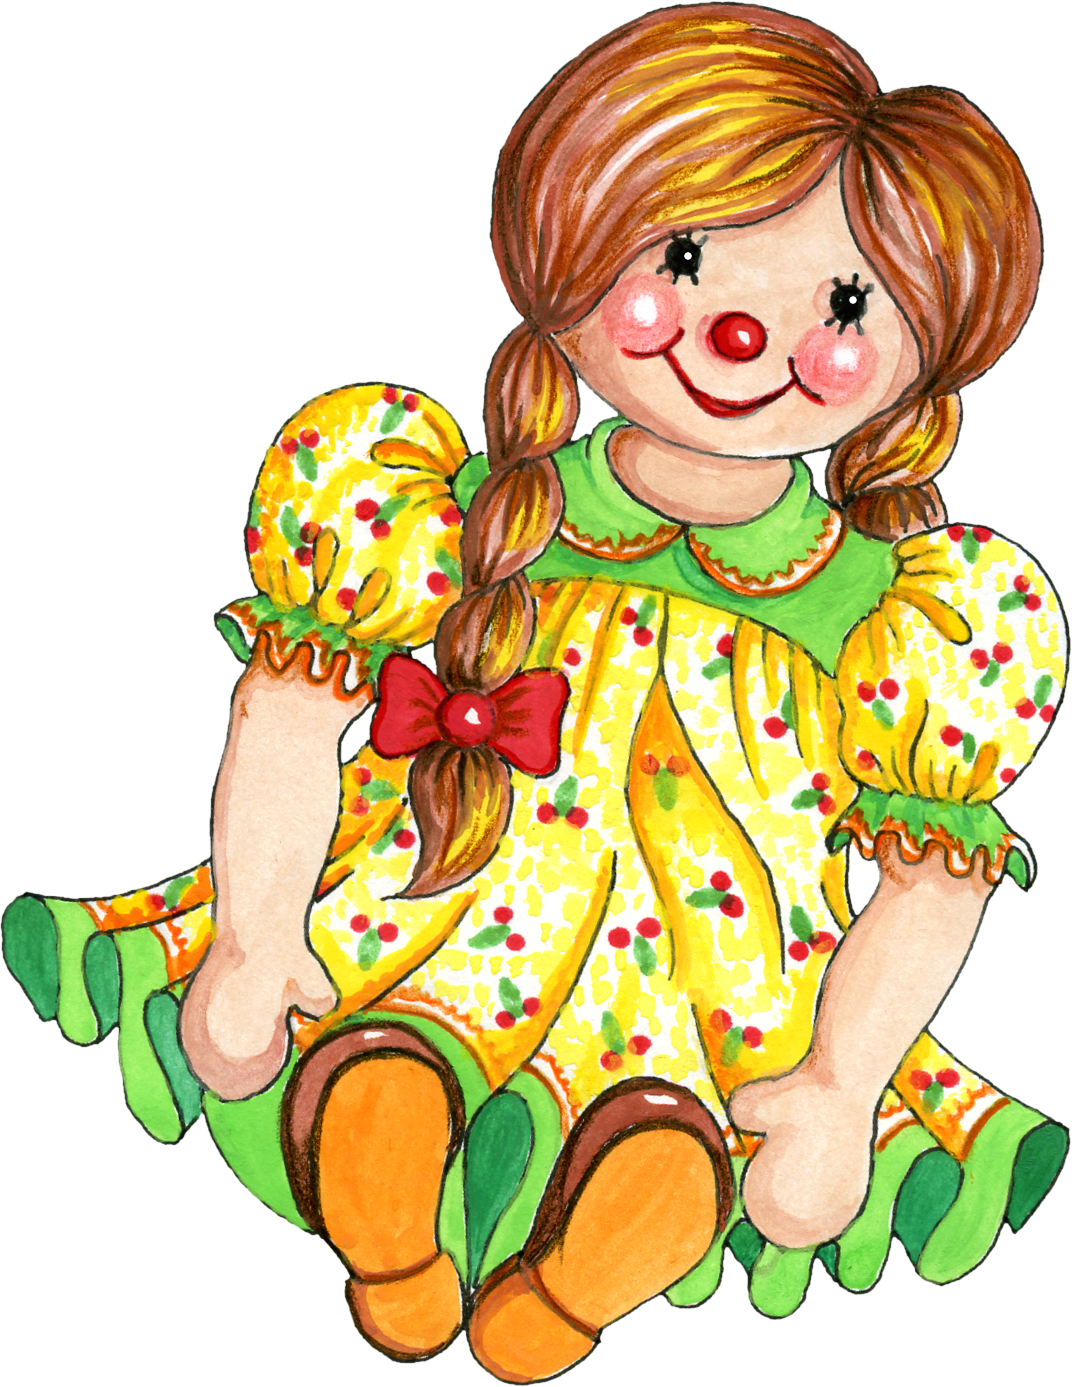 1072x1387 Ragdoll Clipart Cute Doll